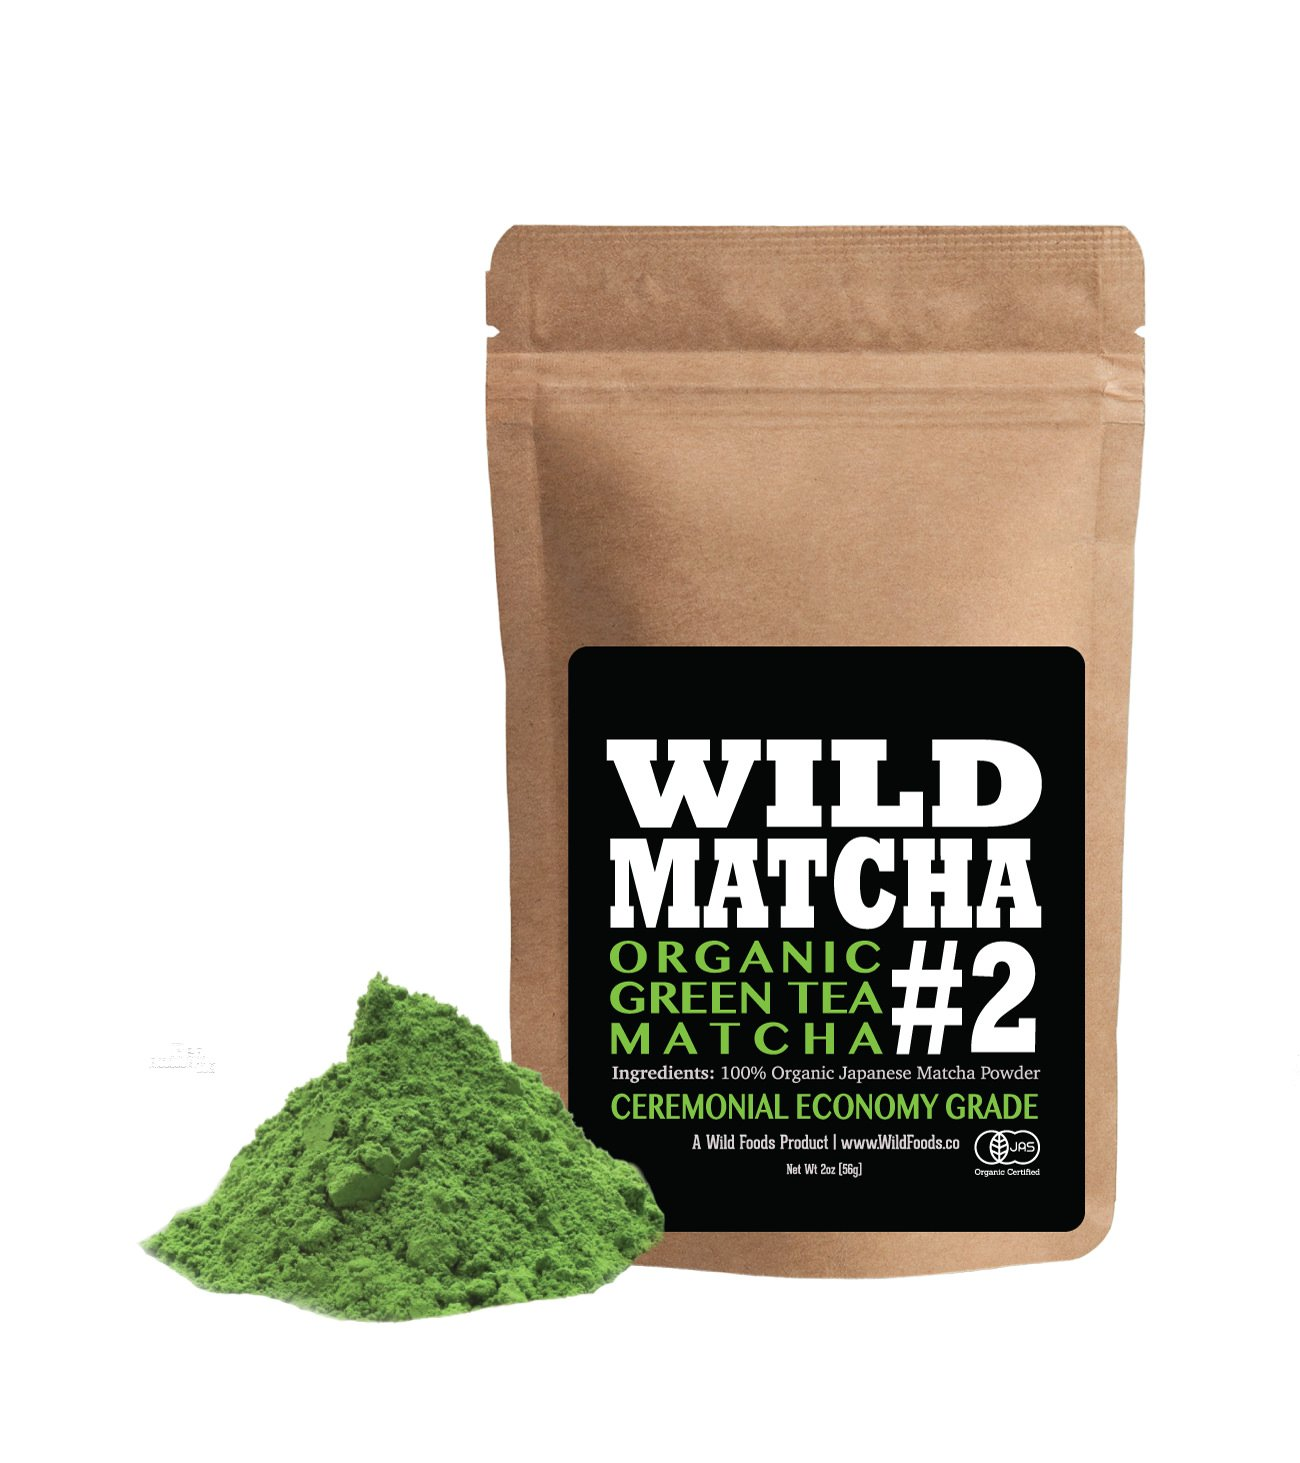 Organic Matcha Green Tea Powder, Wild Matcha #2 Ceremonial Grade, Authentic Japanese Matcha Grown In The Mountains of Kyoto, Japan, JAS Certified Organic (2 ounce)